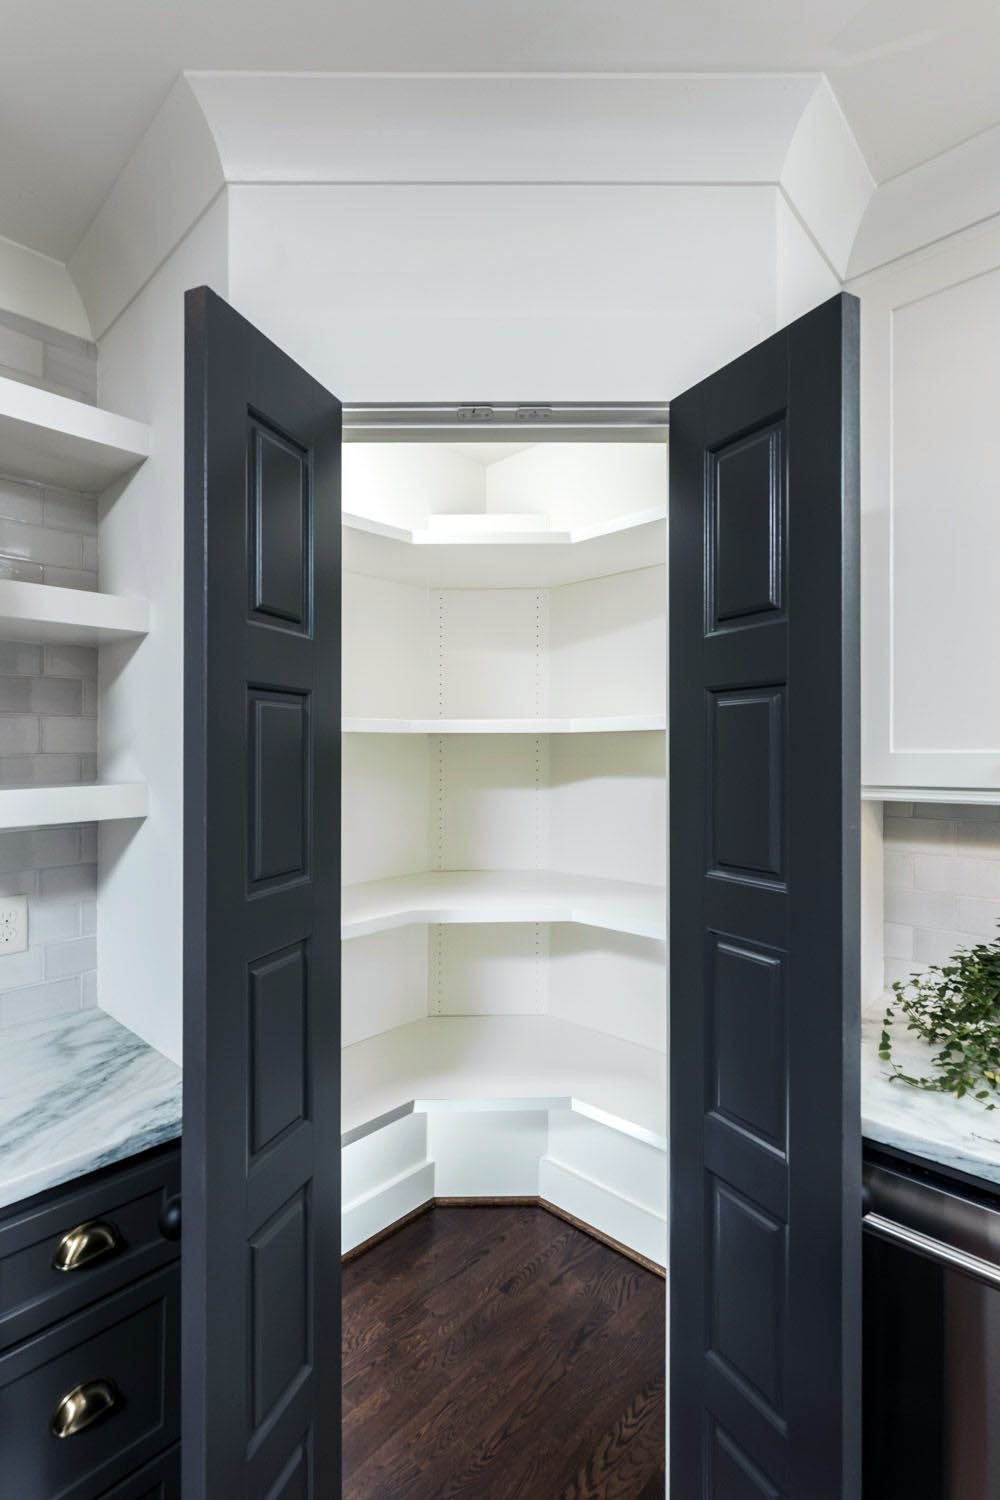 12 Inch Wide Kitchen Cabinet Remodel Planning For Kitchen Cabinet Upper Ideas Kitchen Pantry Cabinets Corner Kitchen Pantry Kitchen Pantry Design